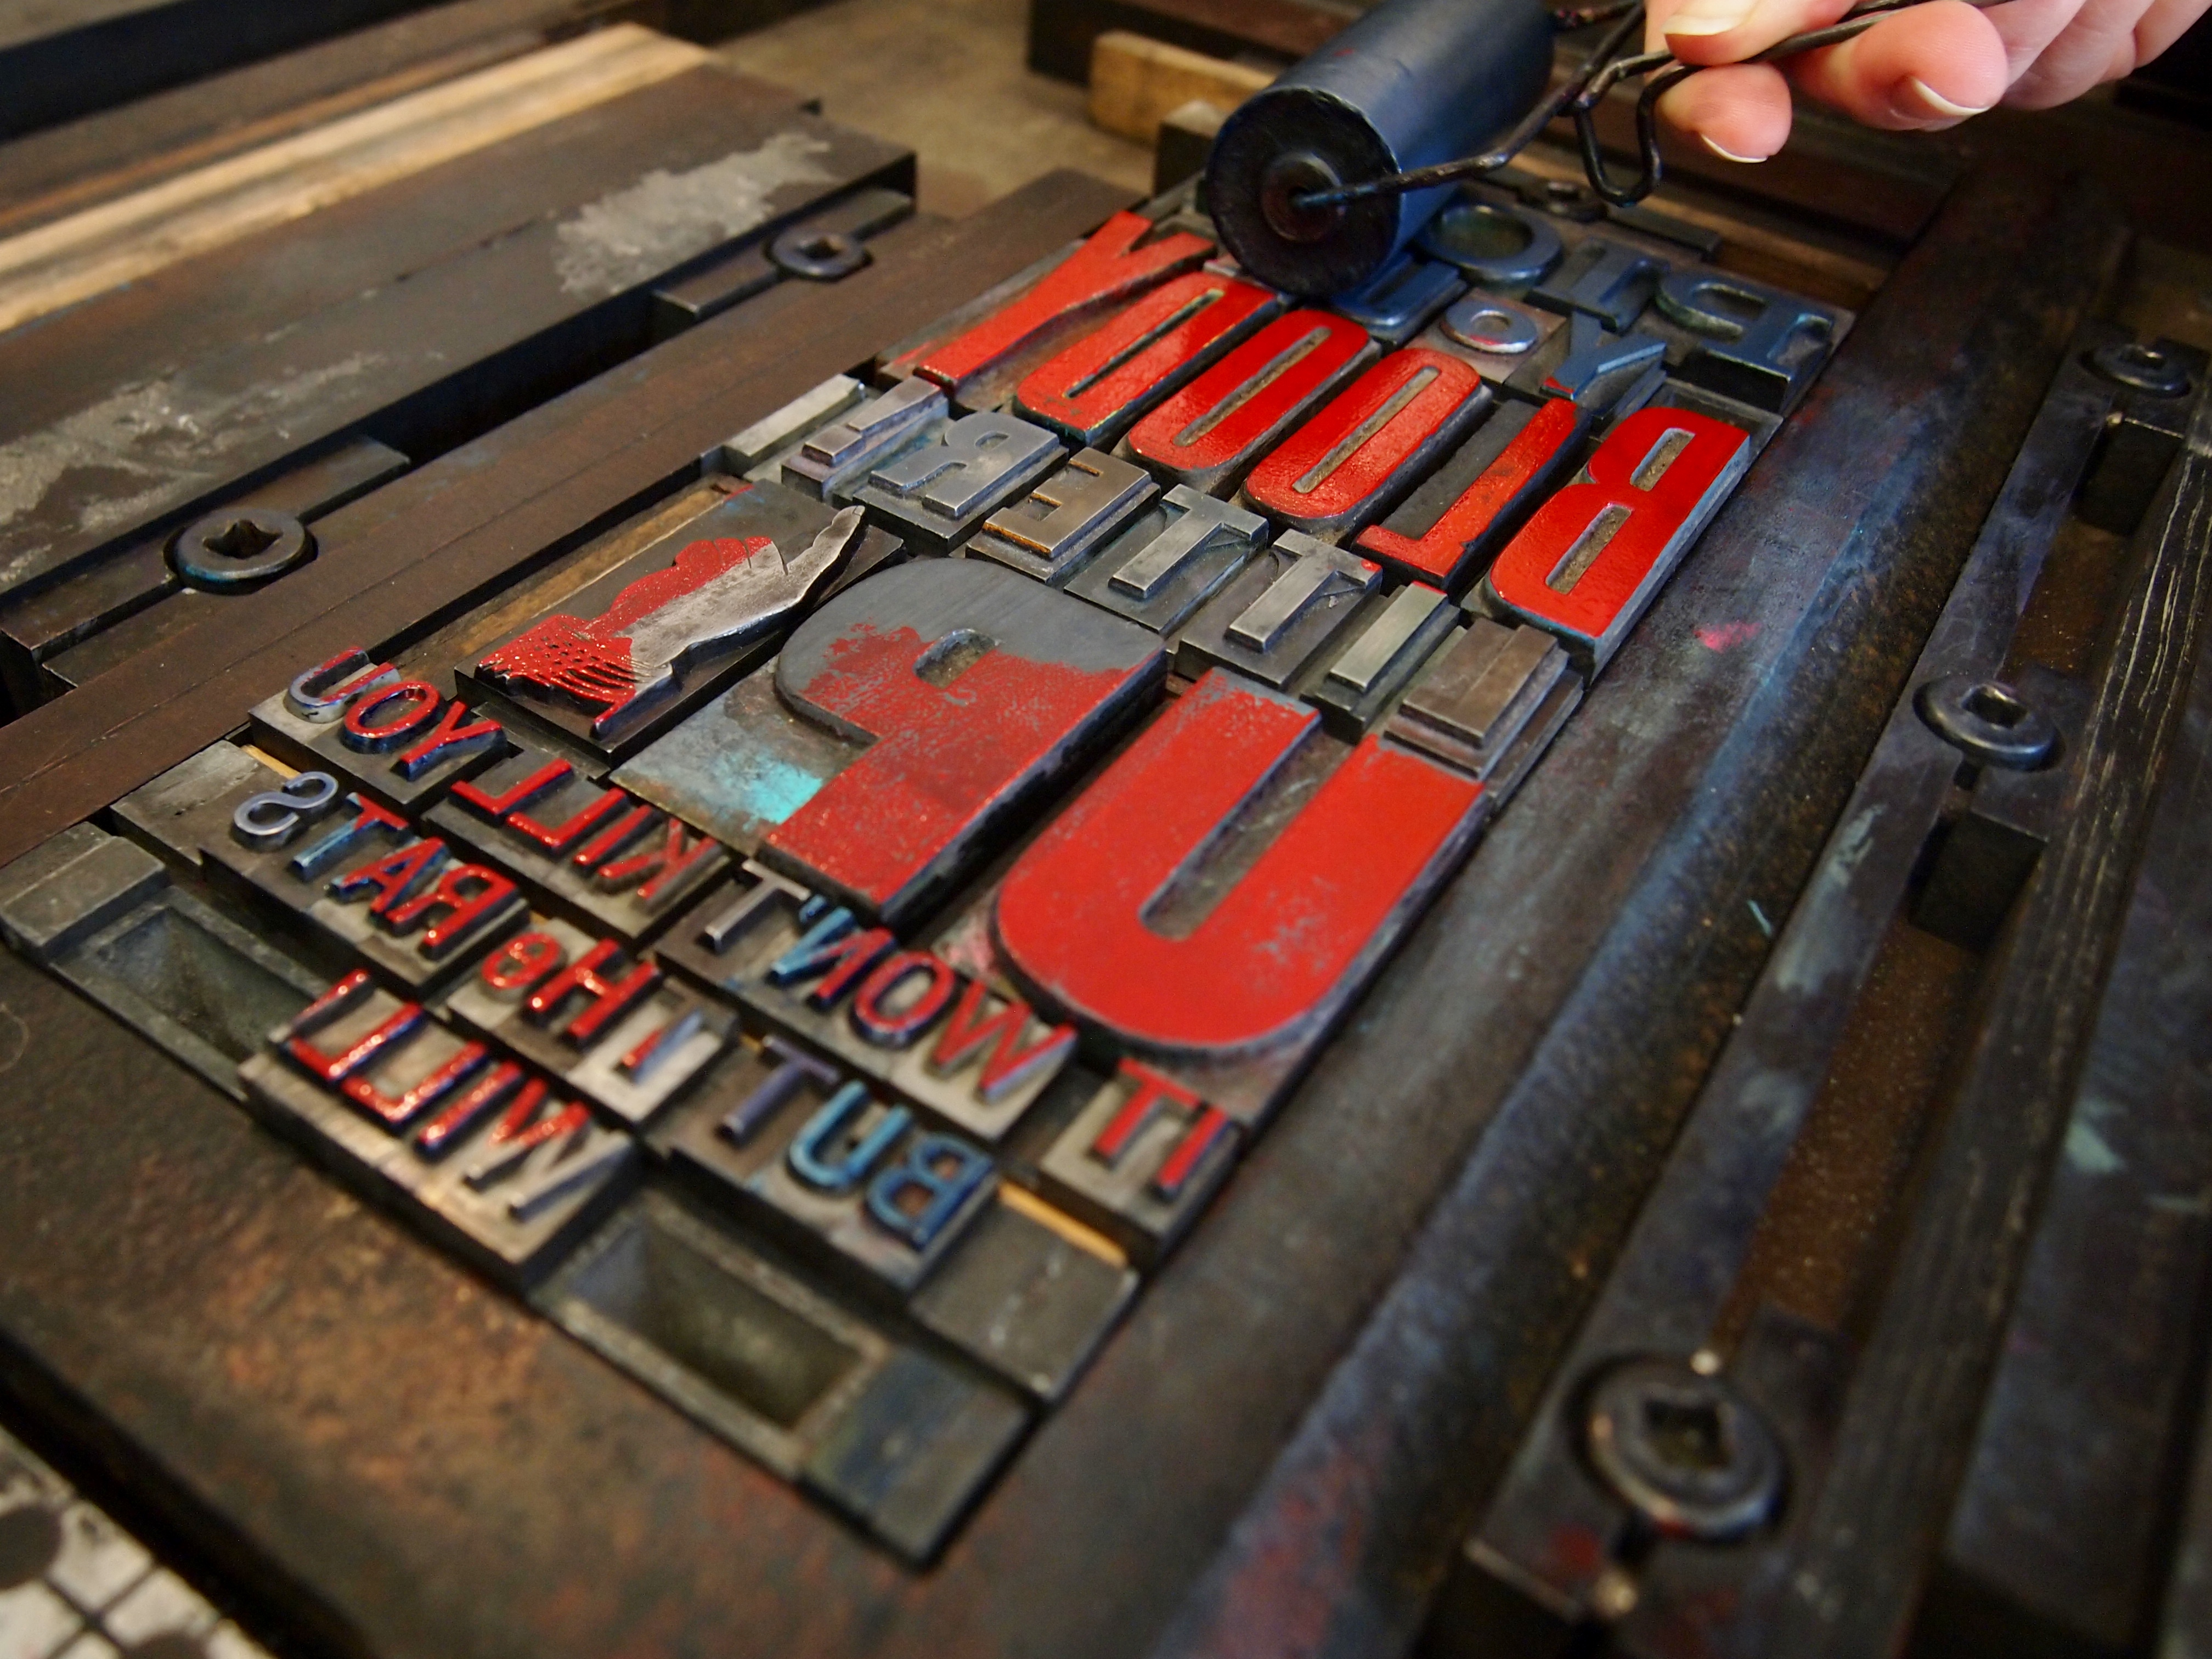 Print a Letterpress Poster: Inking Up